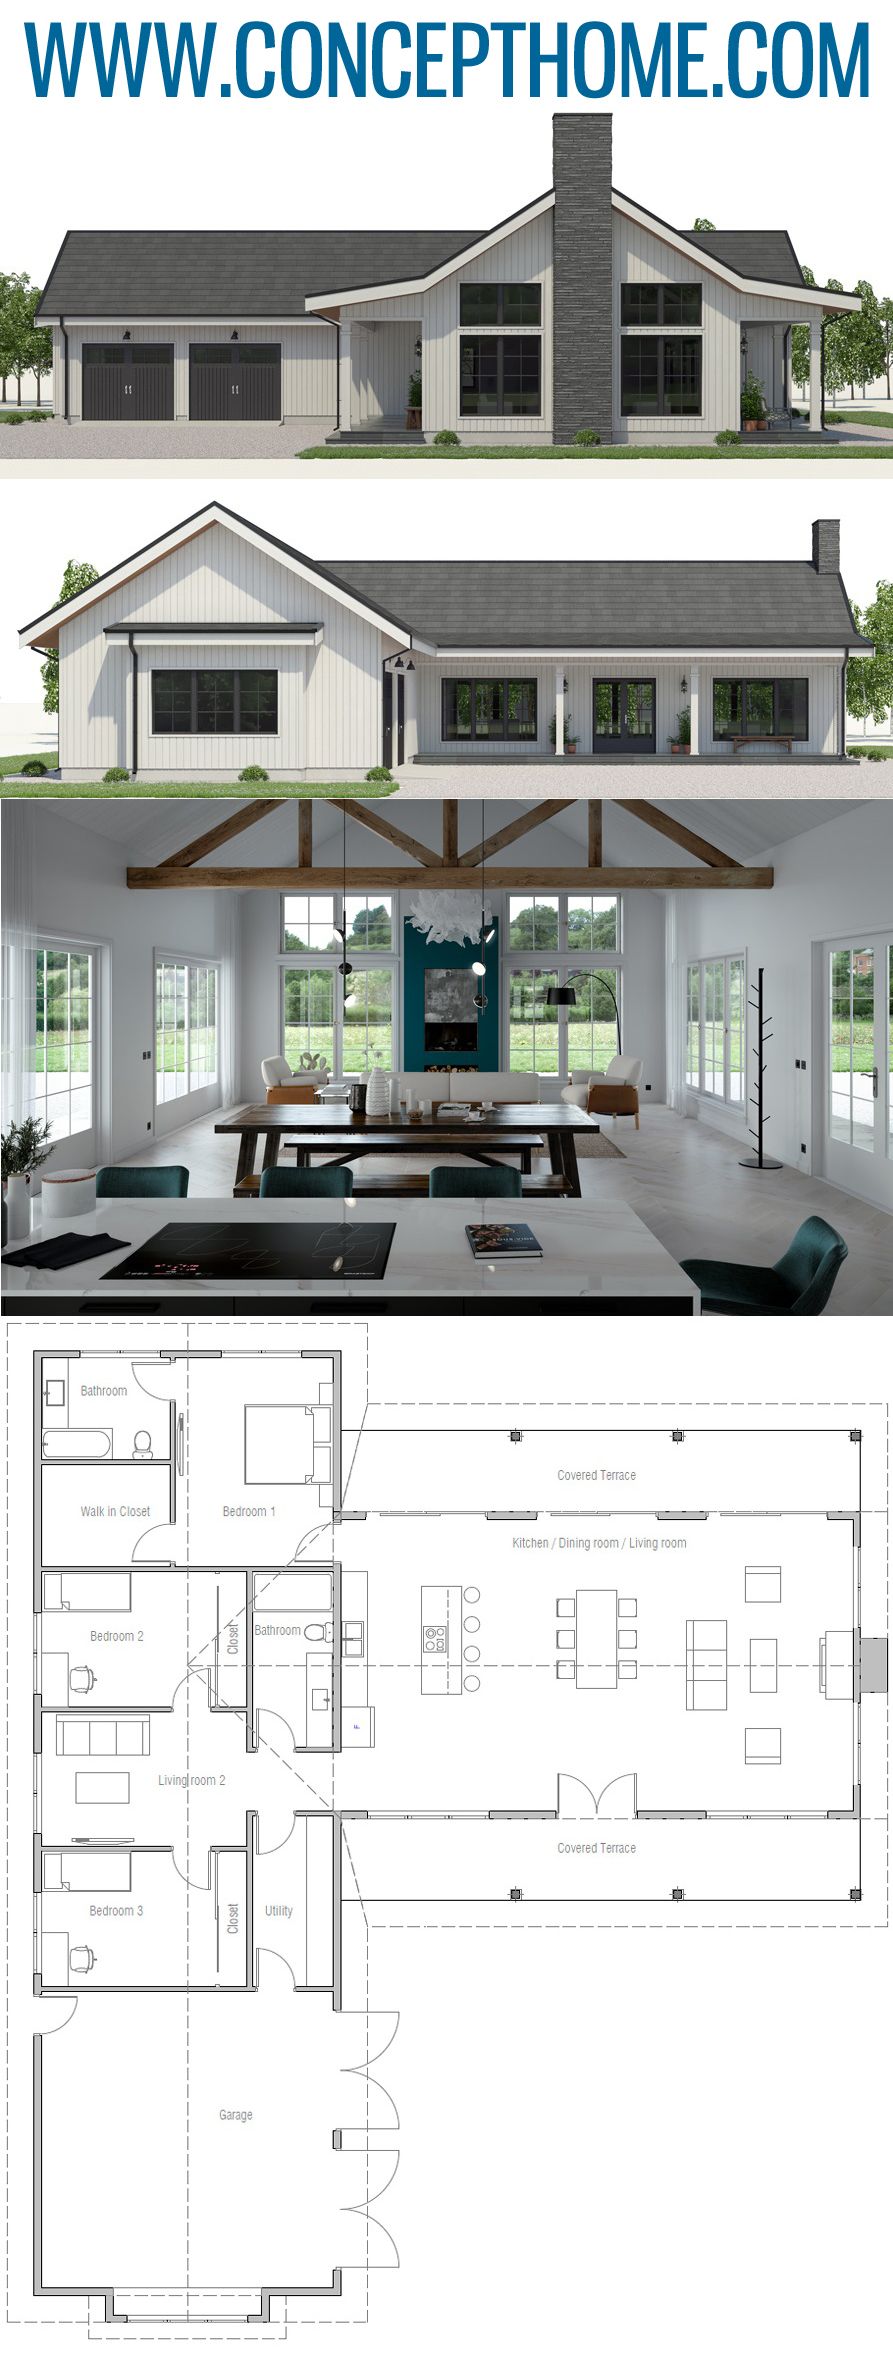 Home Plan Ch567 Lake House Plans House Projects Architecture Dream House Plans